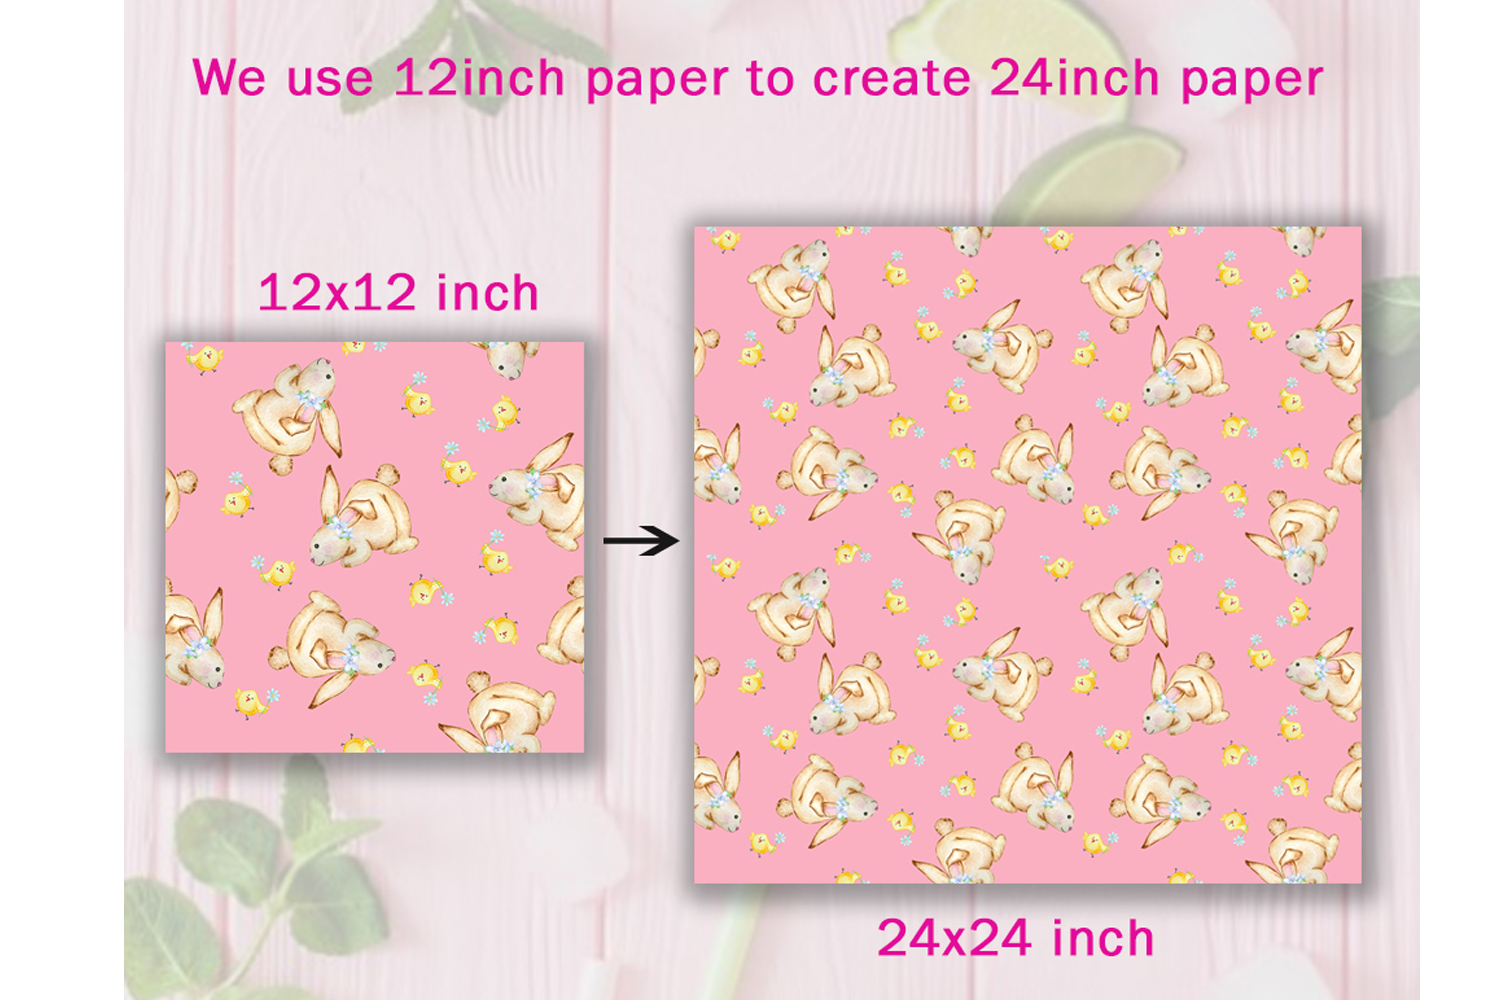 Watercolor Cute Bunny Seamless Paper Pattern example image 8